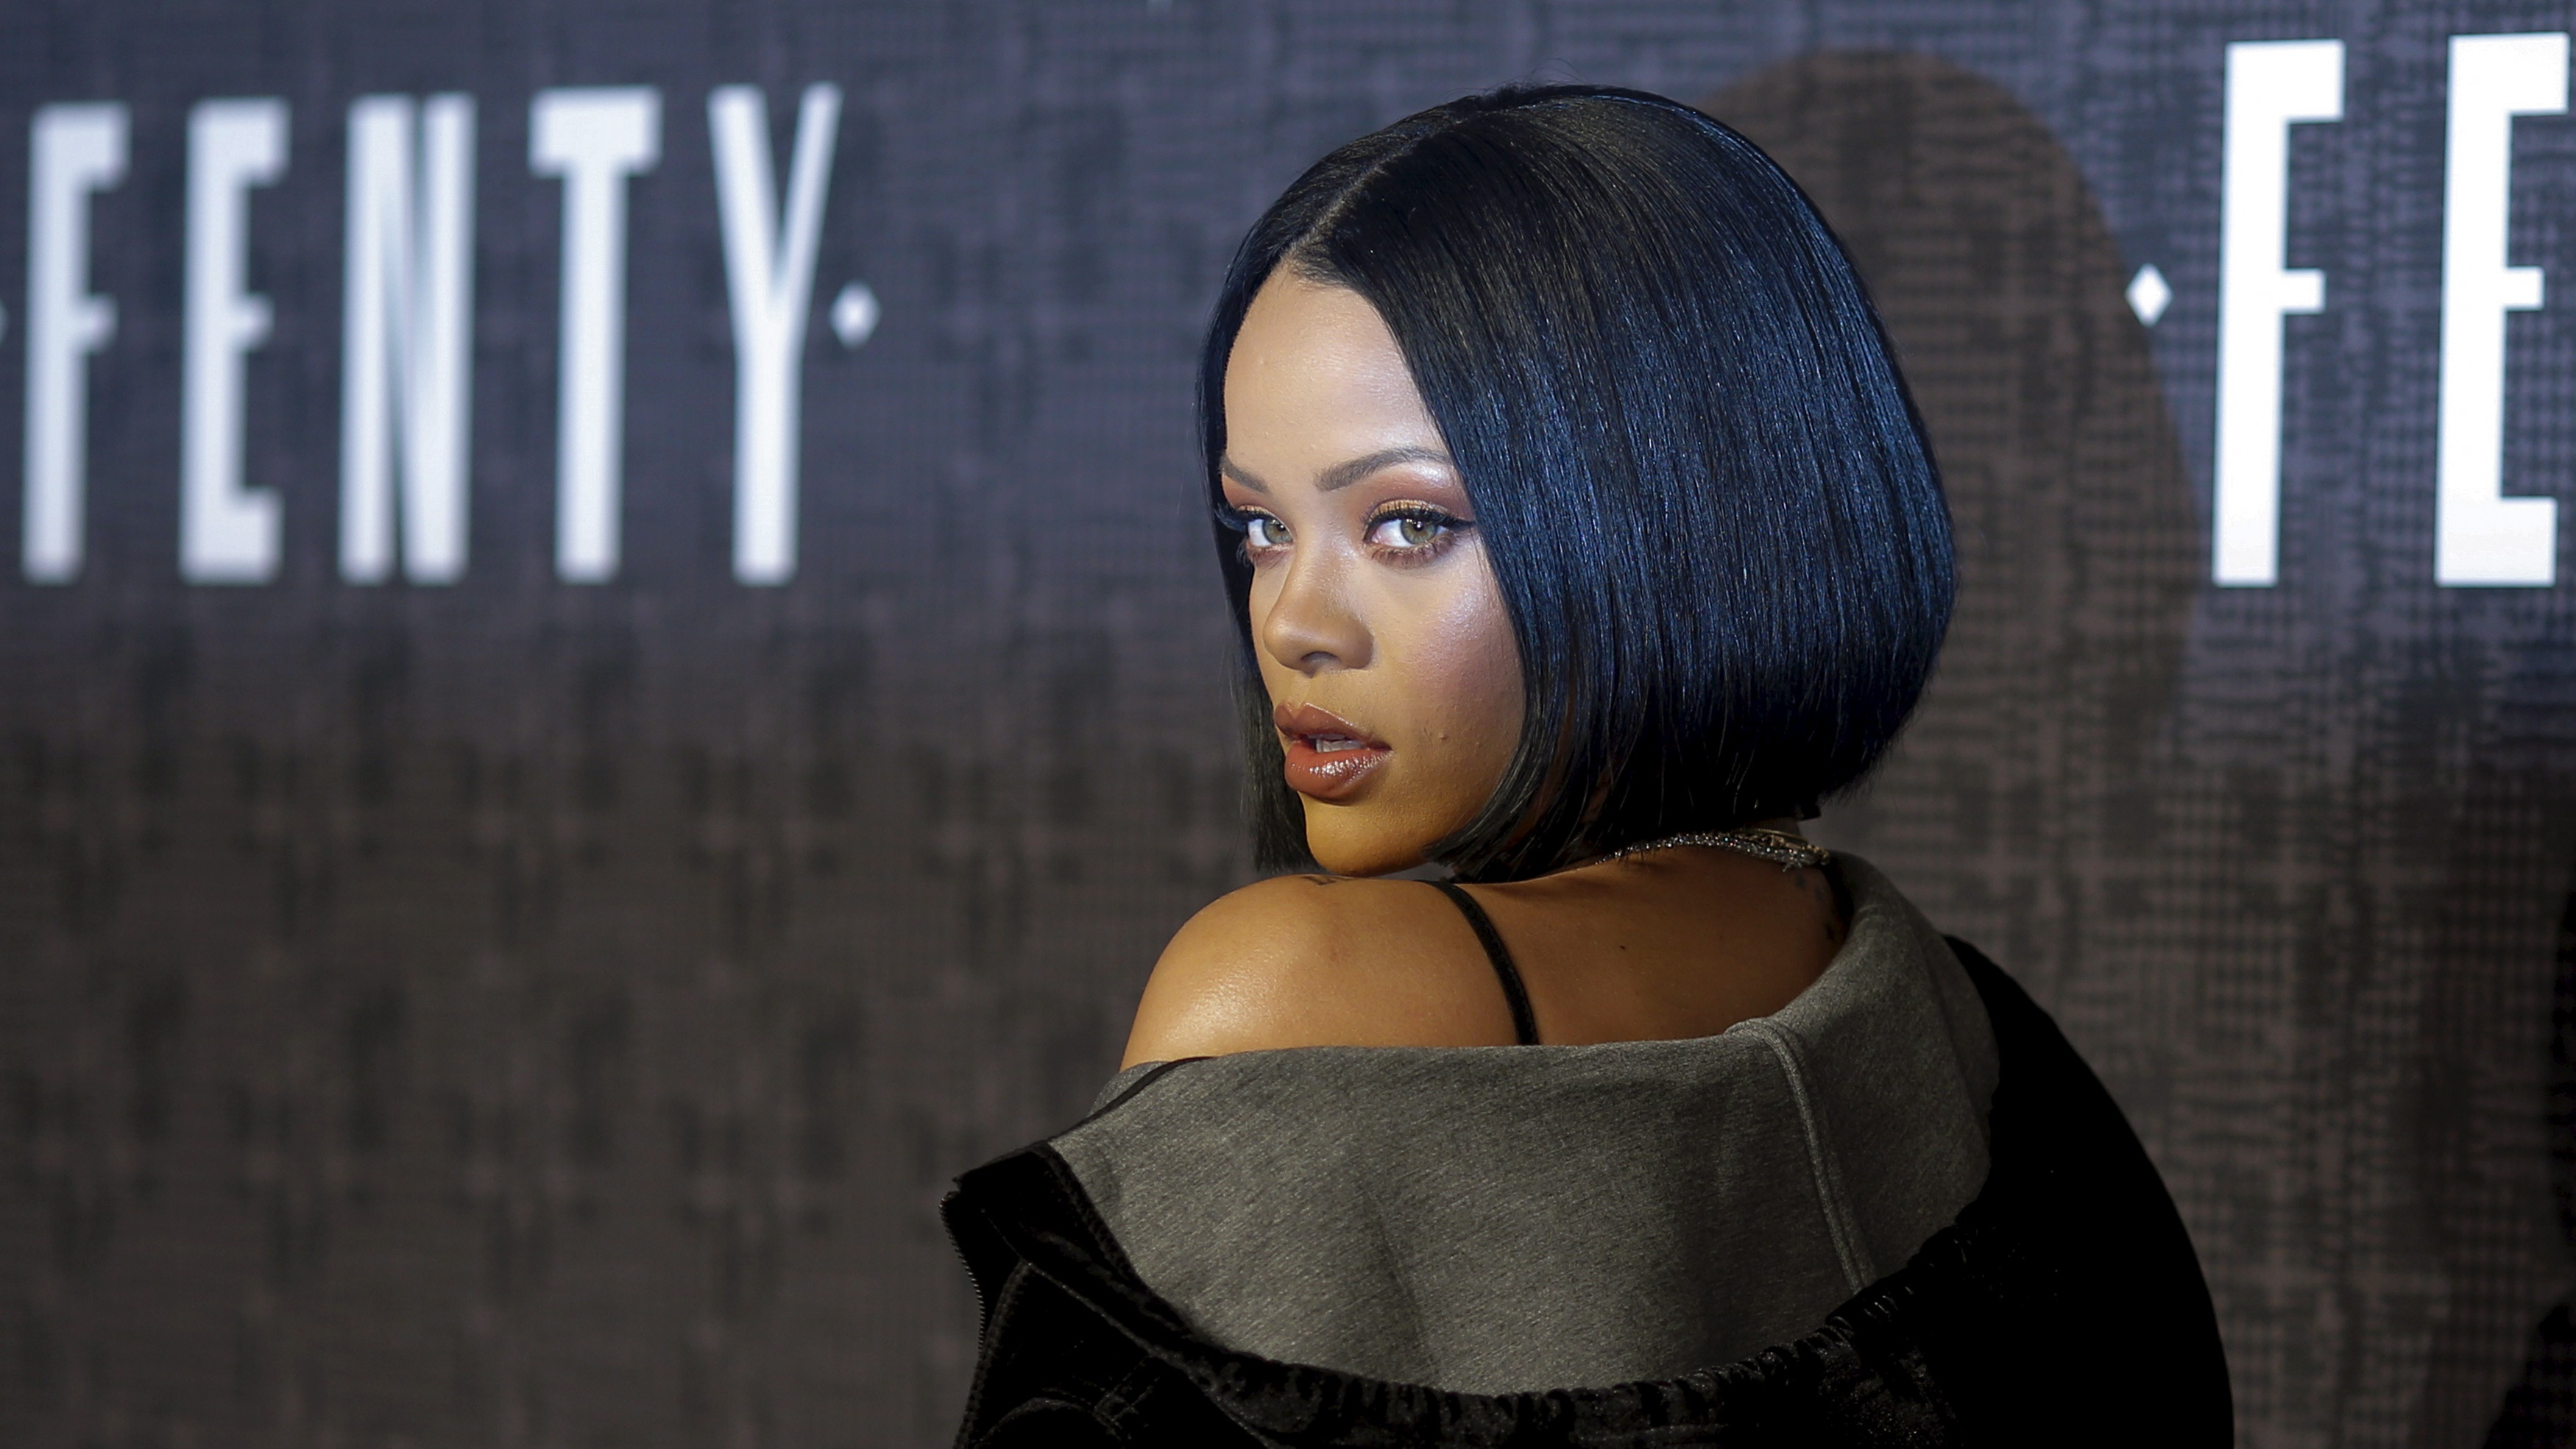 Singer Rihanna attends the red carpet before the Fenty PUMA by Rihanna Fall/Winter 2016 collection show during New York Fashion Week in New York, February 12, 2016.